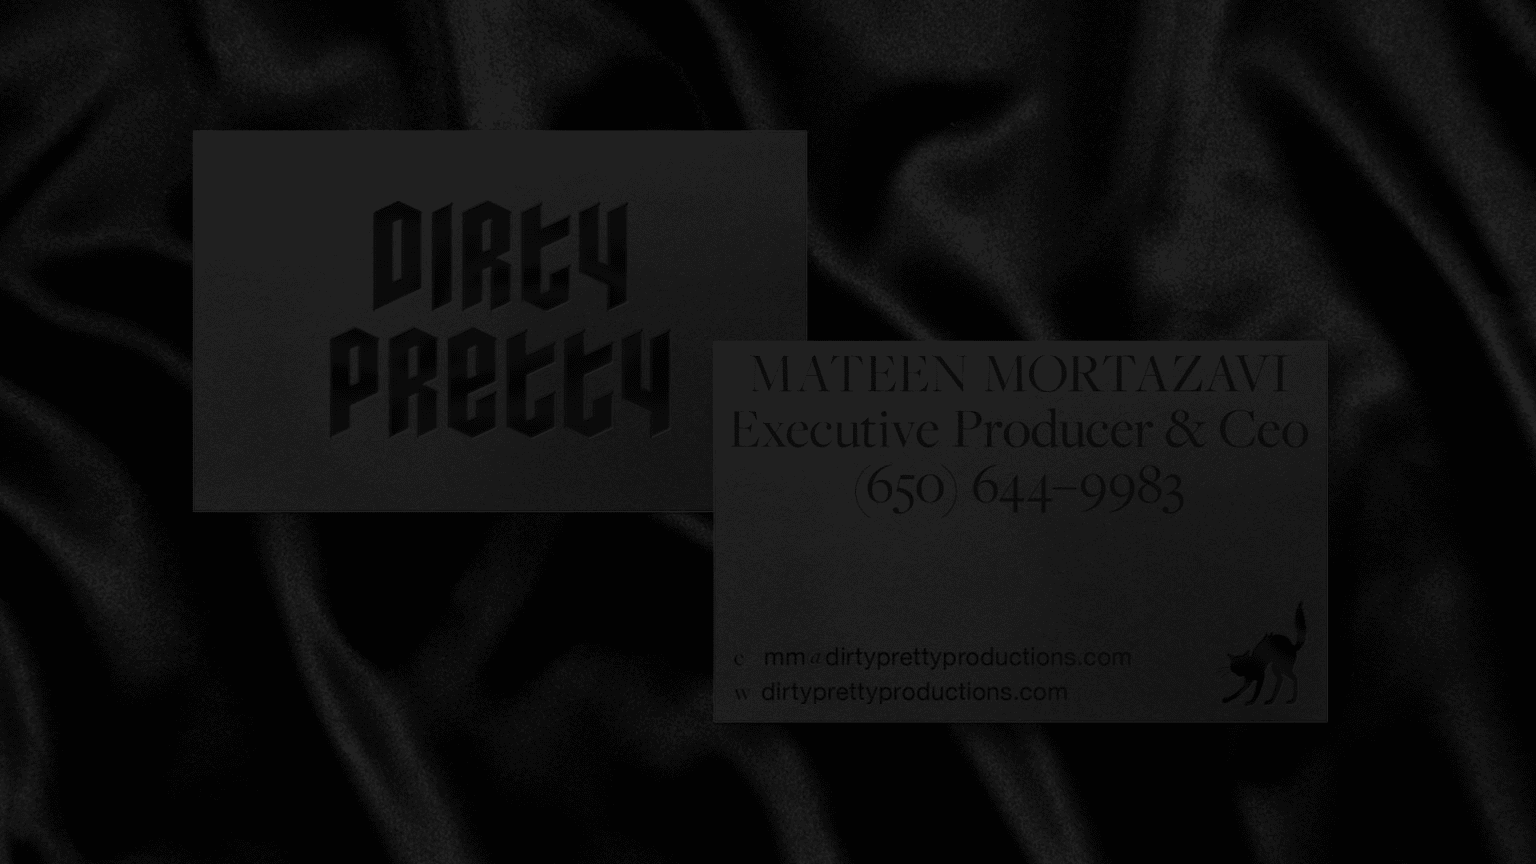 Dirty Pretty Productions